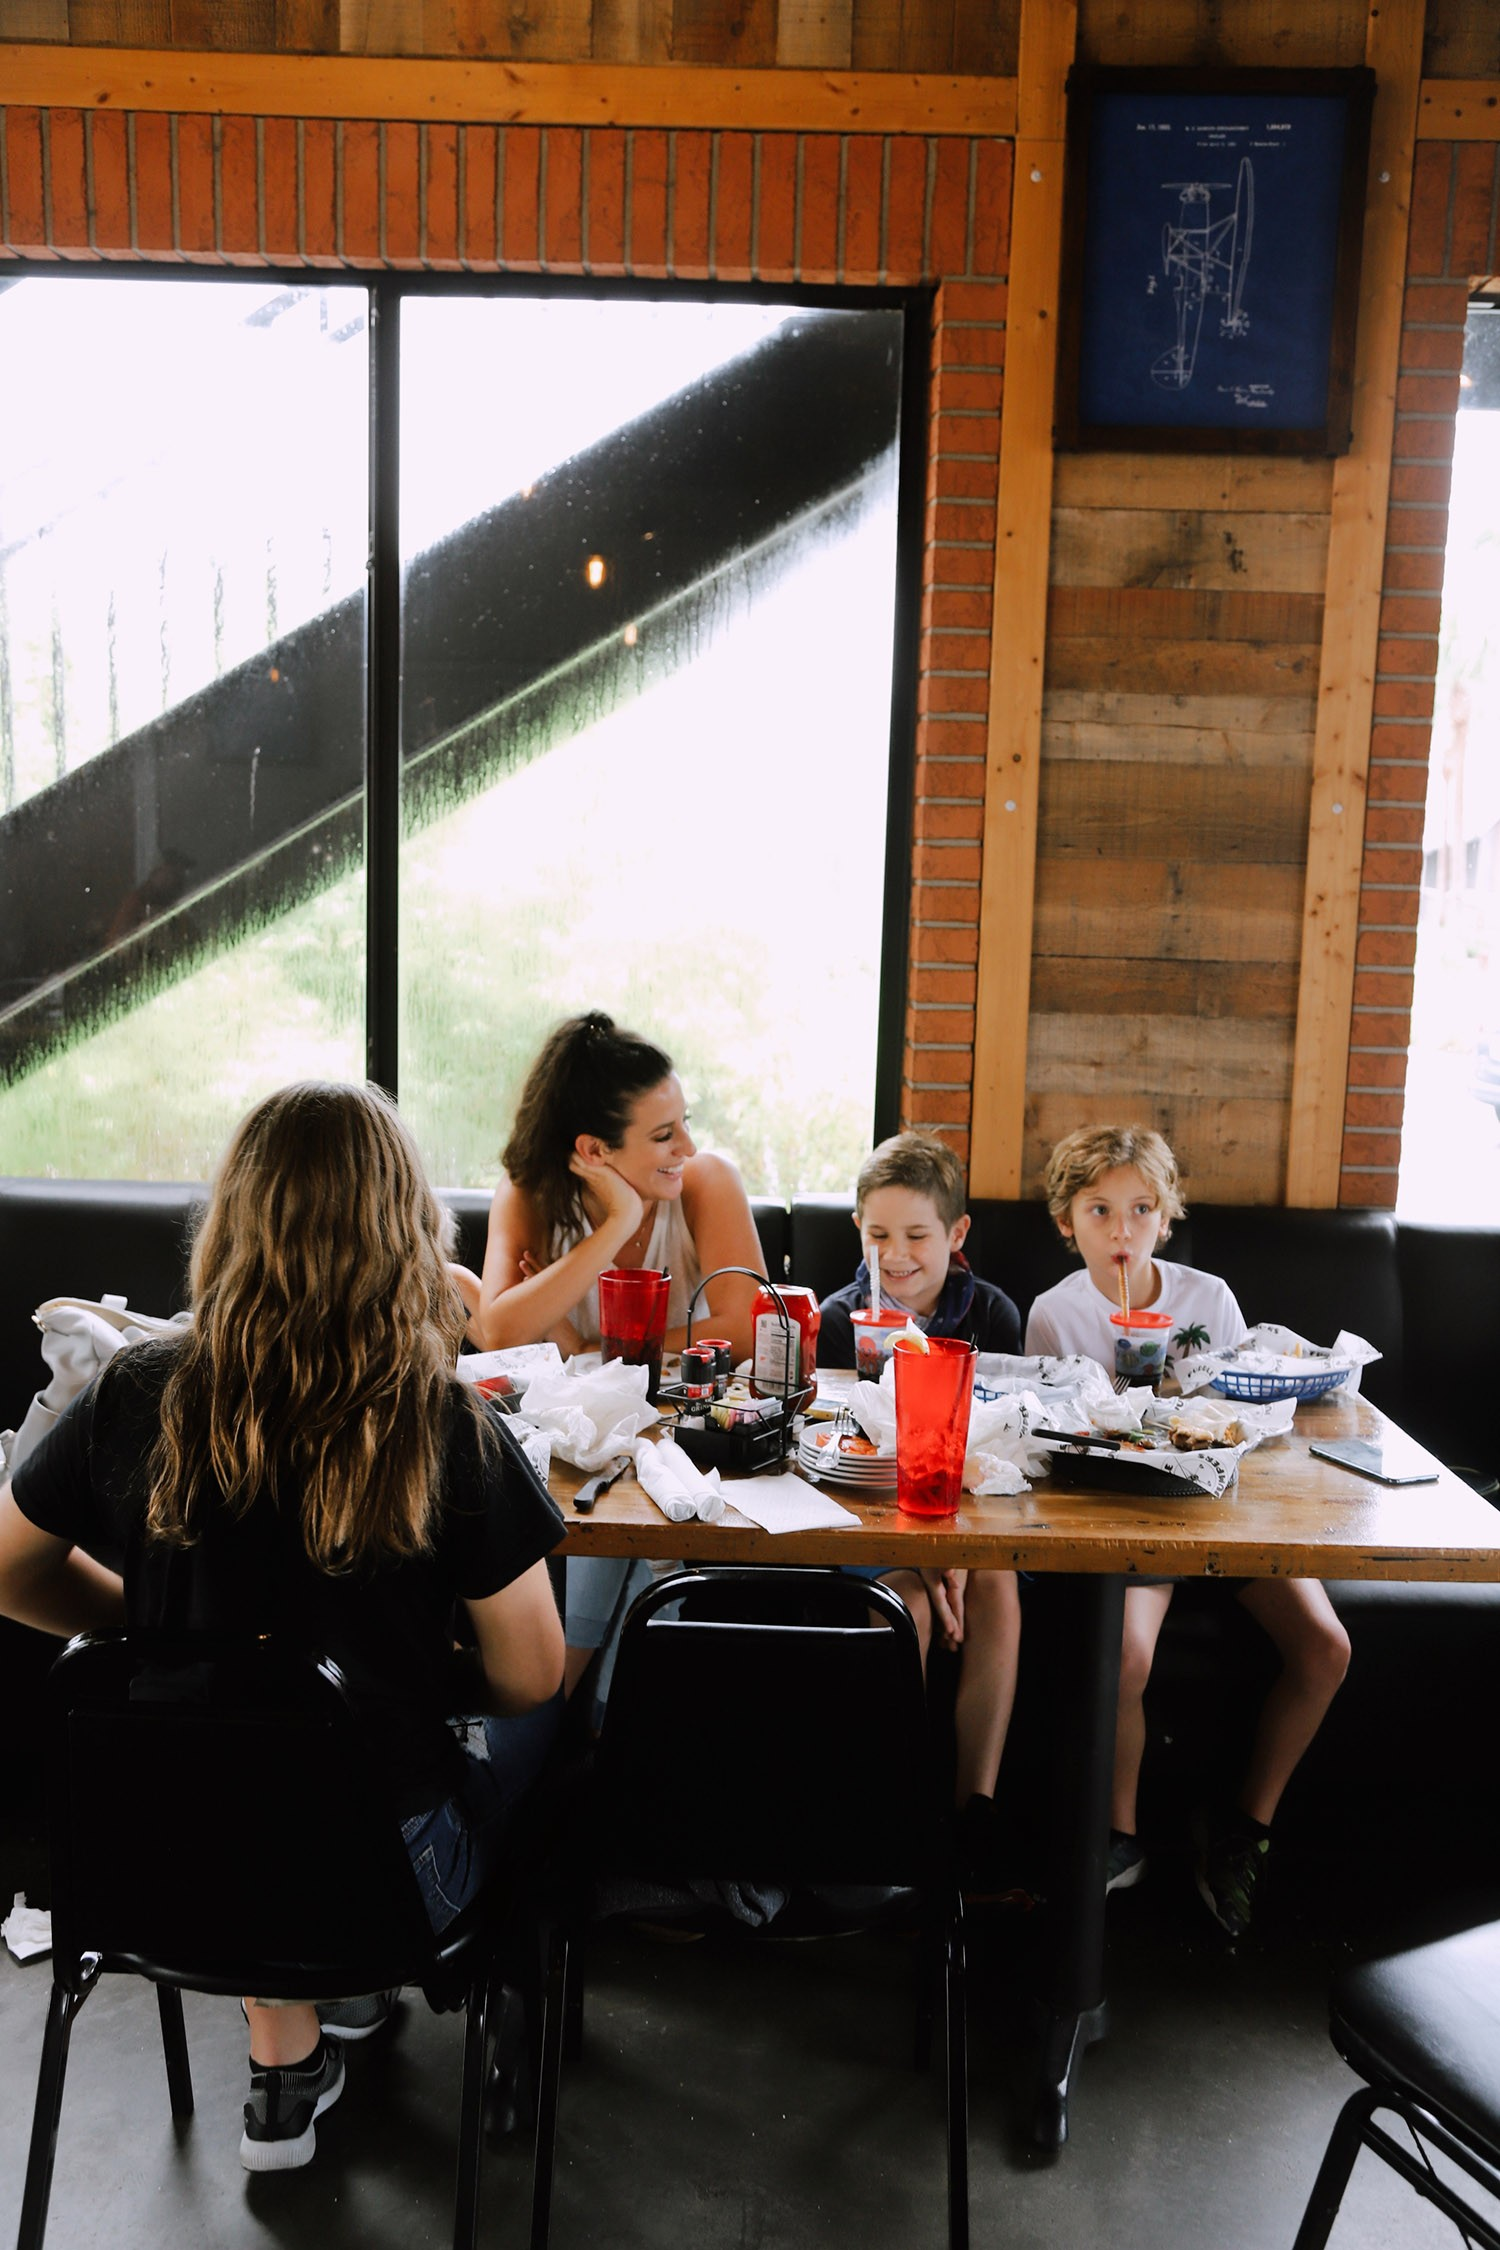 Spectacular Lake County, Florida Staycation Ideas for the Family!   Lake County by popular Florida blog, Fresh Mommy Blog: image of a family eating food at Puddle Jumpers.